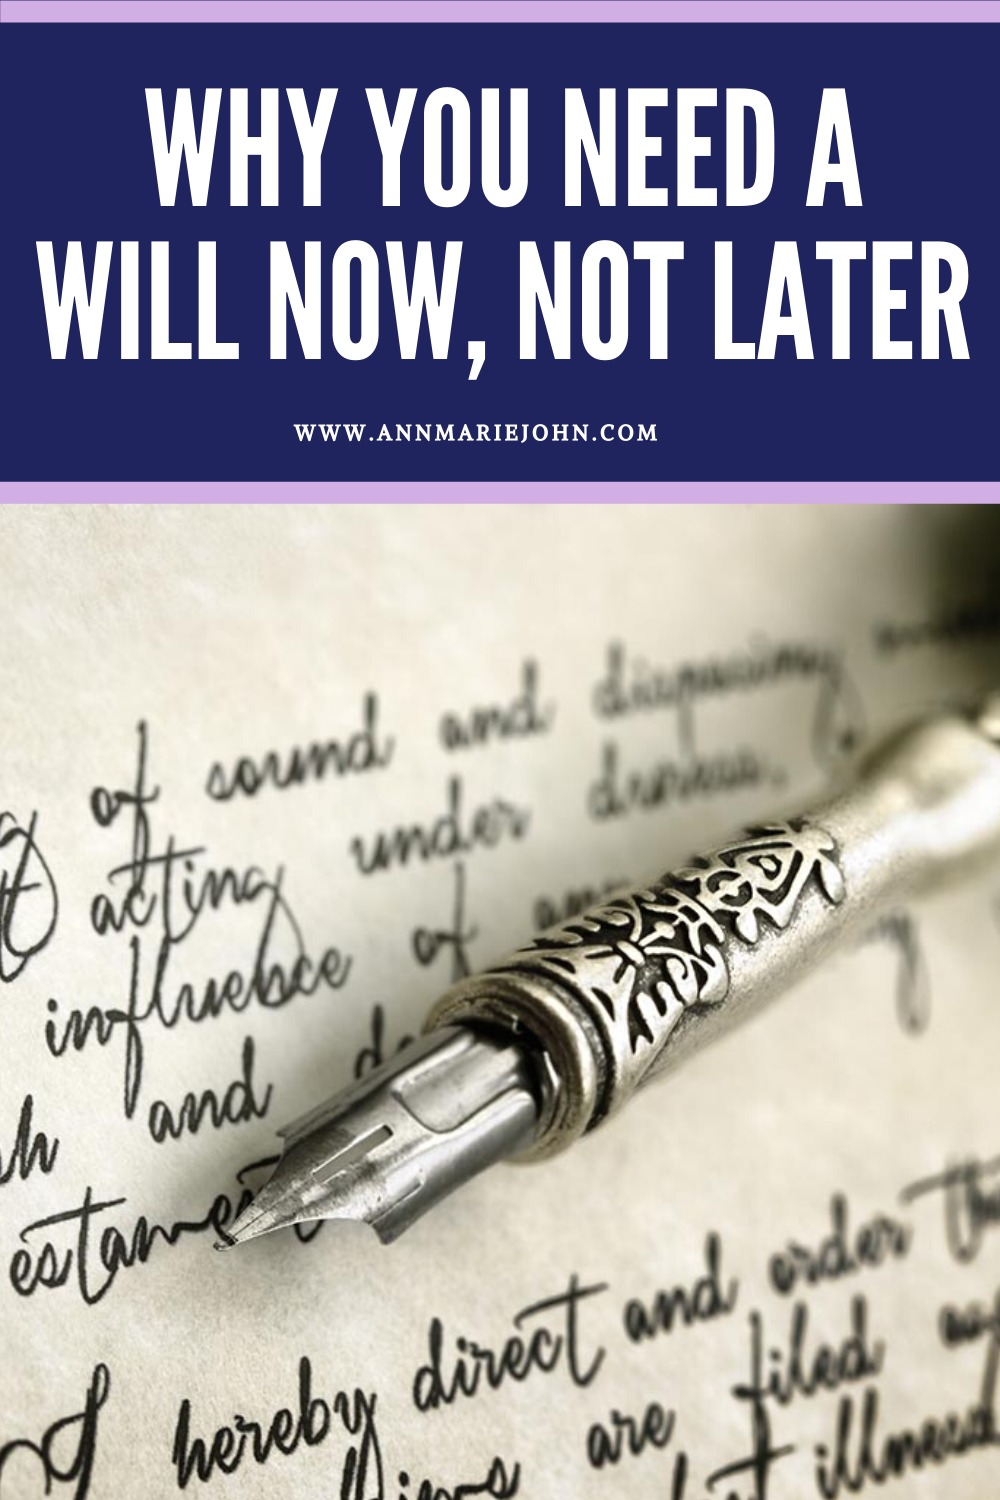 Why You Need a Will Pinterest Image